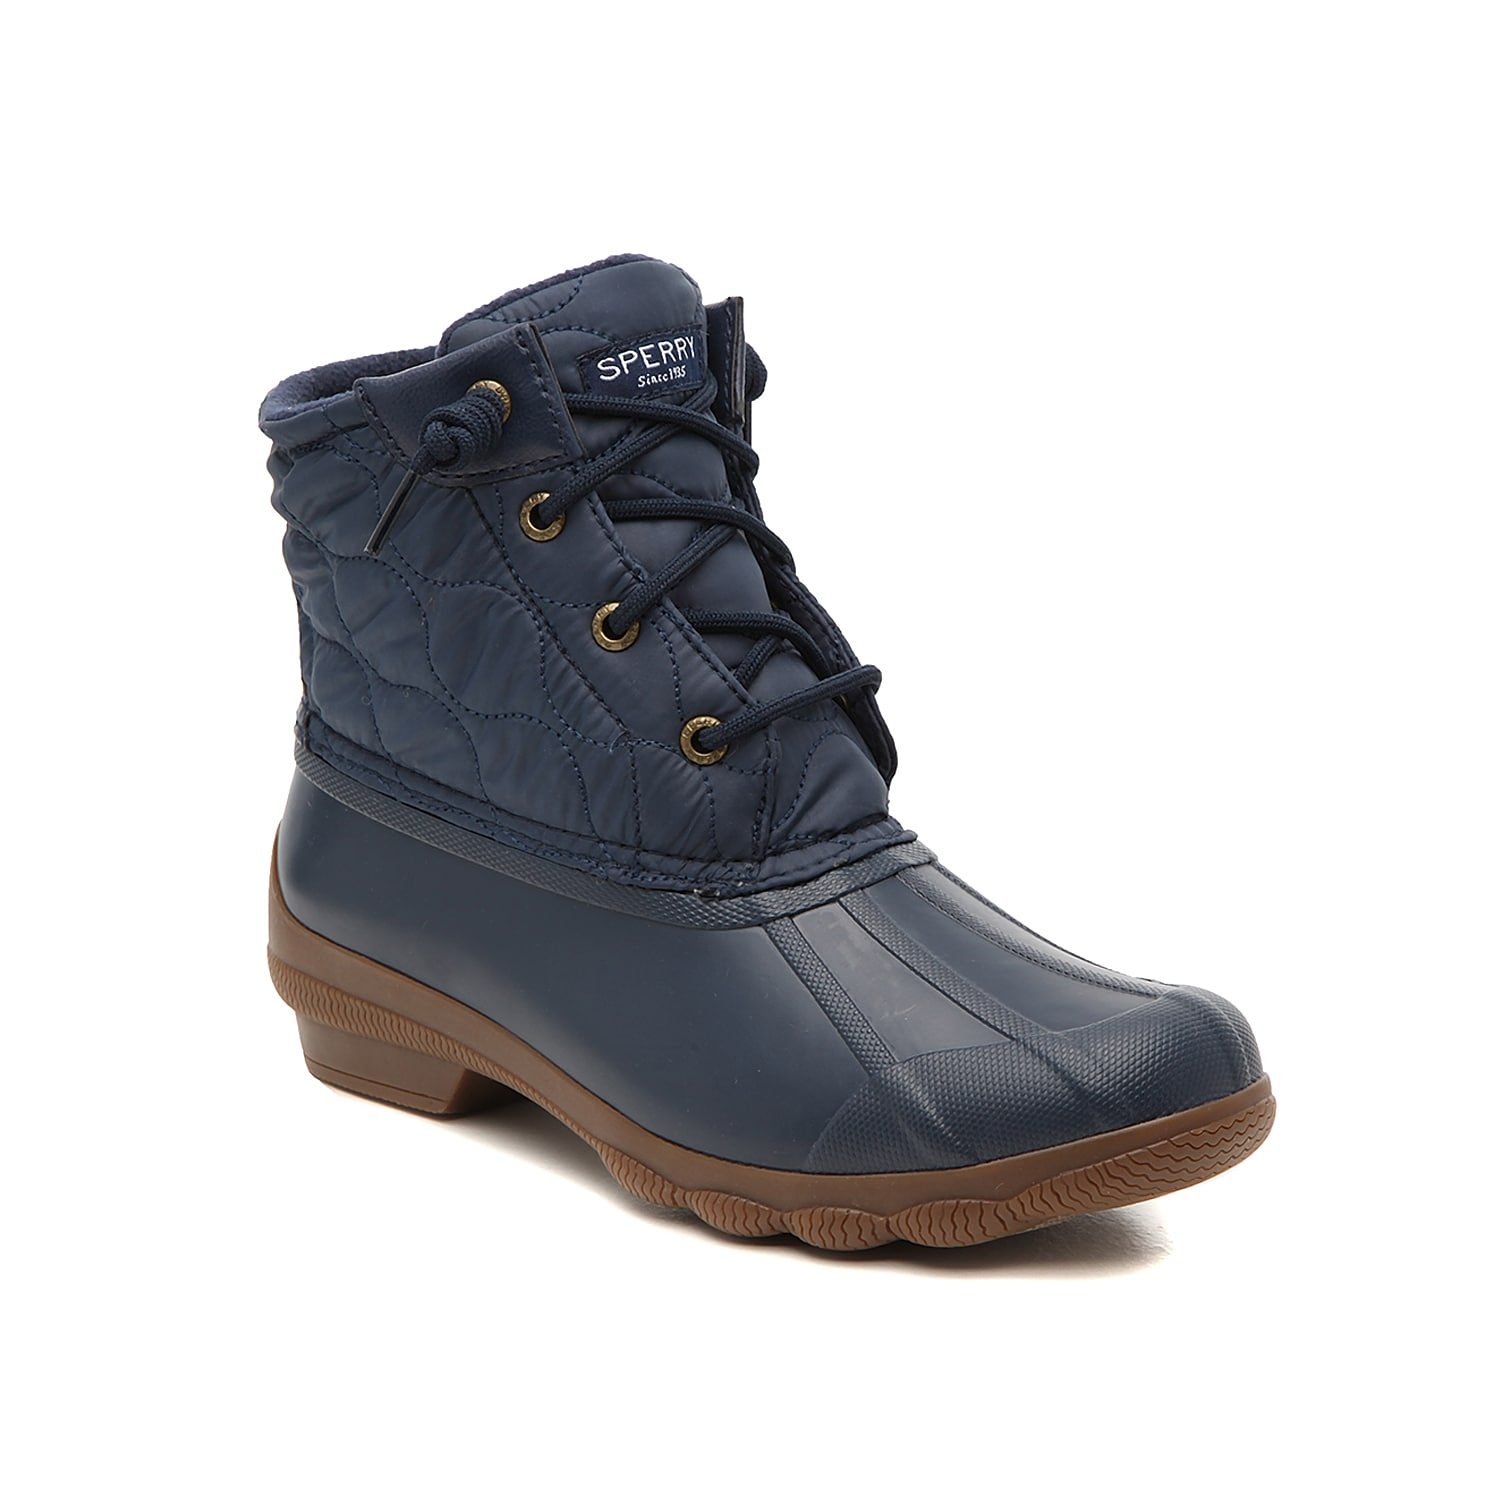 Zip up the Syren Gulf duck boots from Sperry to complete your cold-weather look. These booties feature a warm microfleece lining to keep feet cozy and are finished with a traction sole for steady steps. Click here for Boot Measuring Guide.